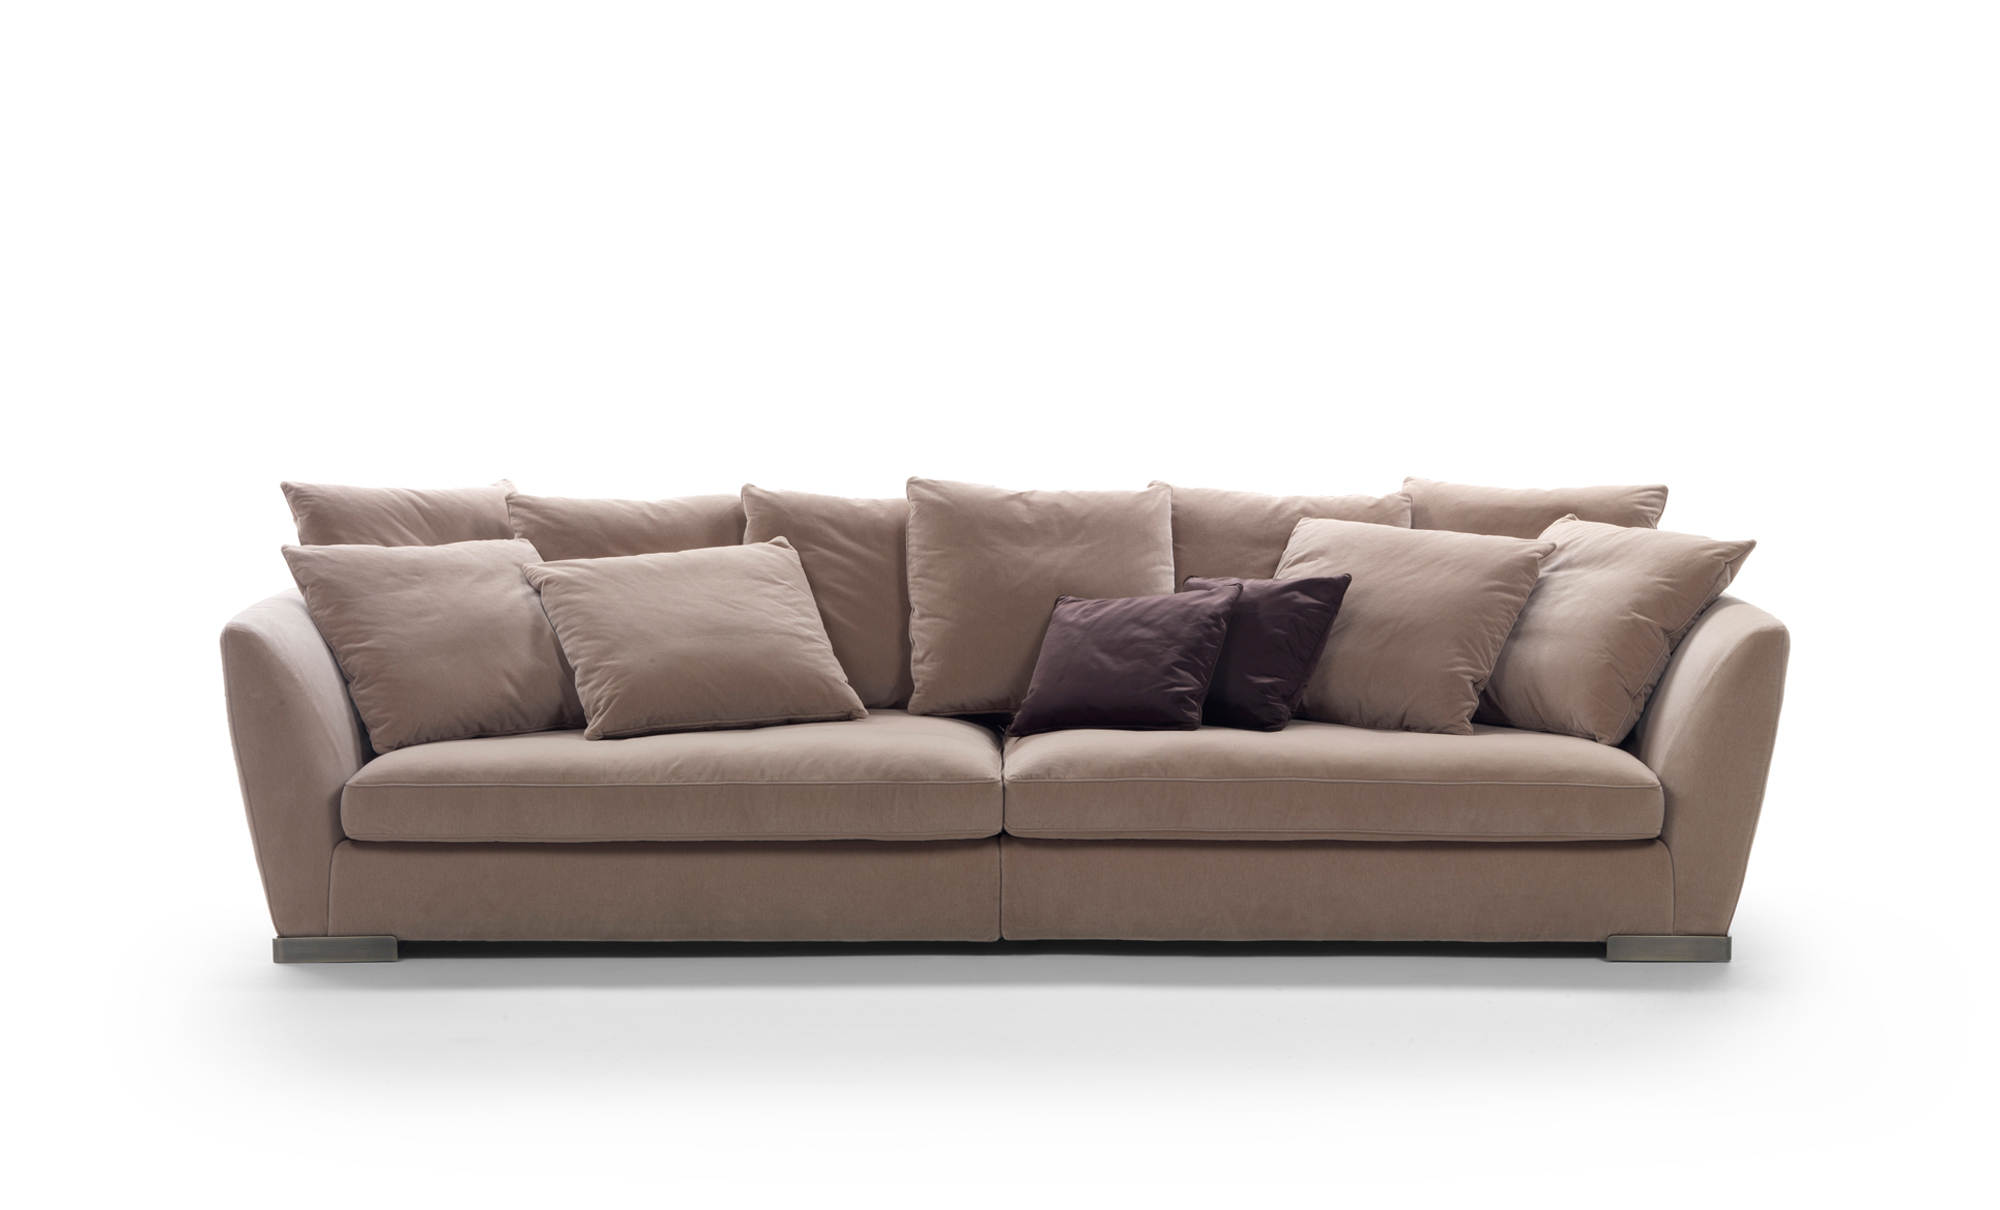 Couch Furniture Ginevra Sofa By Flexform Mood Fanuli Furniture